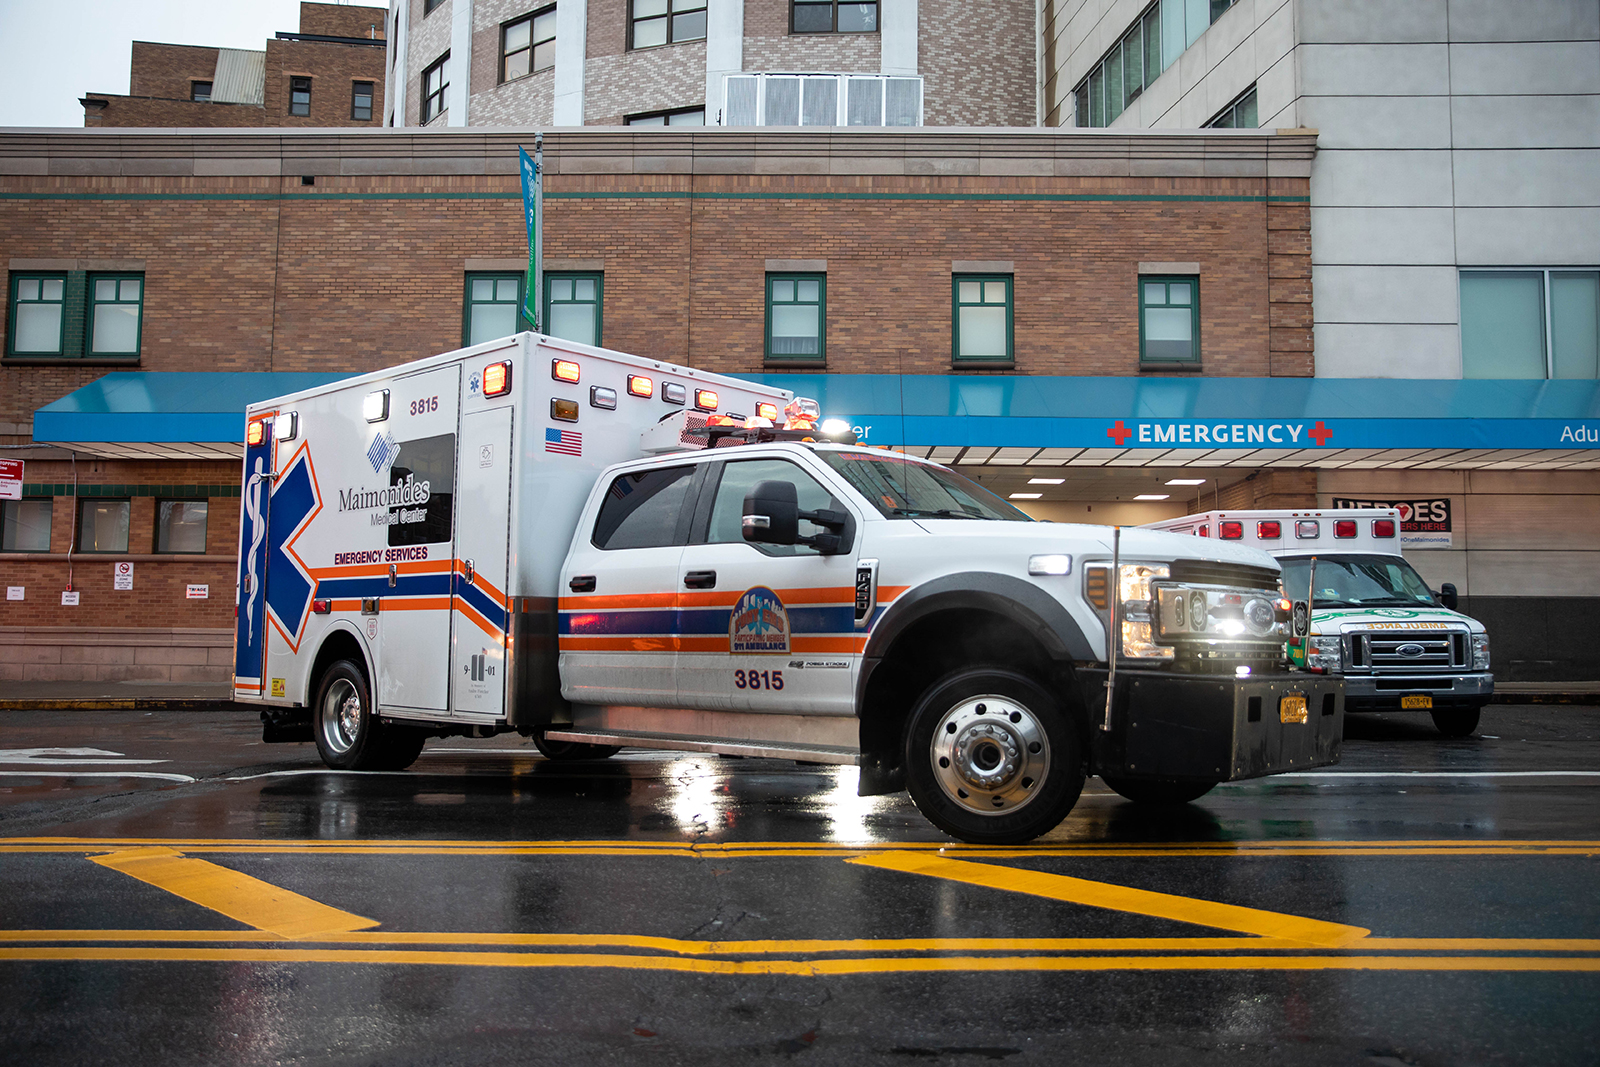 An ambulance arrives at the emergency room entrance of Maimonides Medical Center in Brooklyn, New York, on December 14.